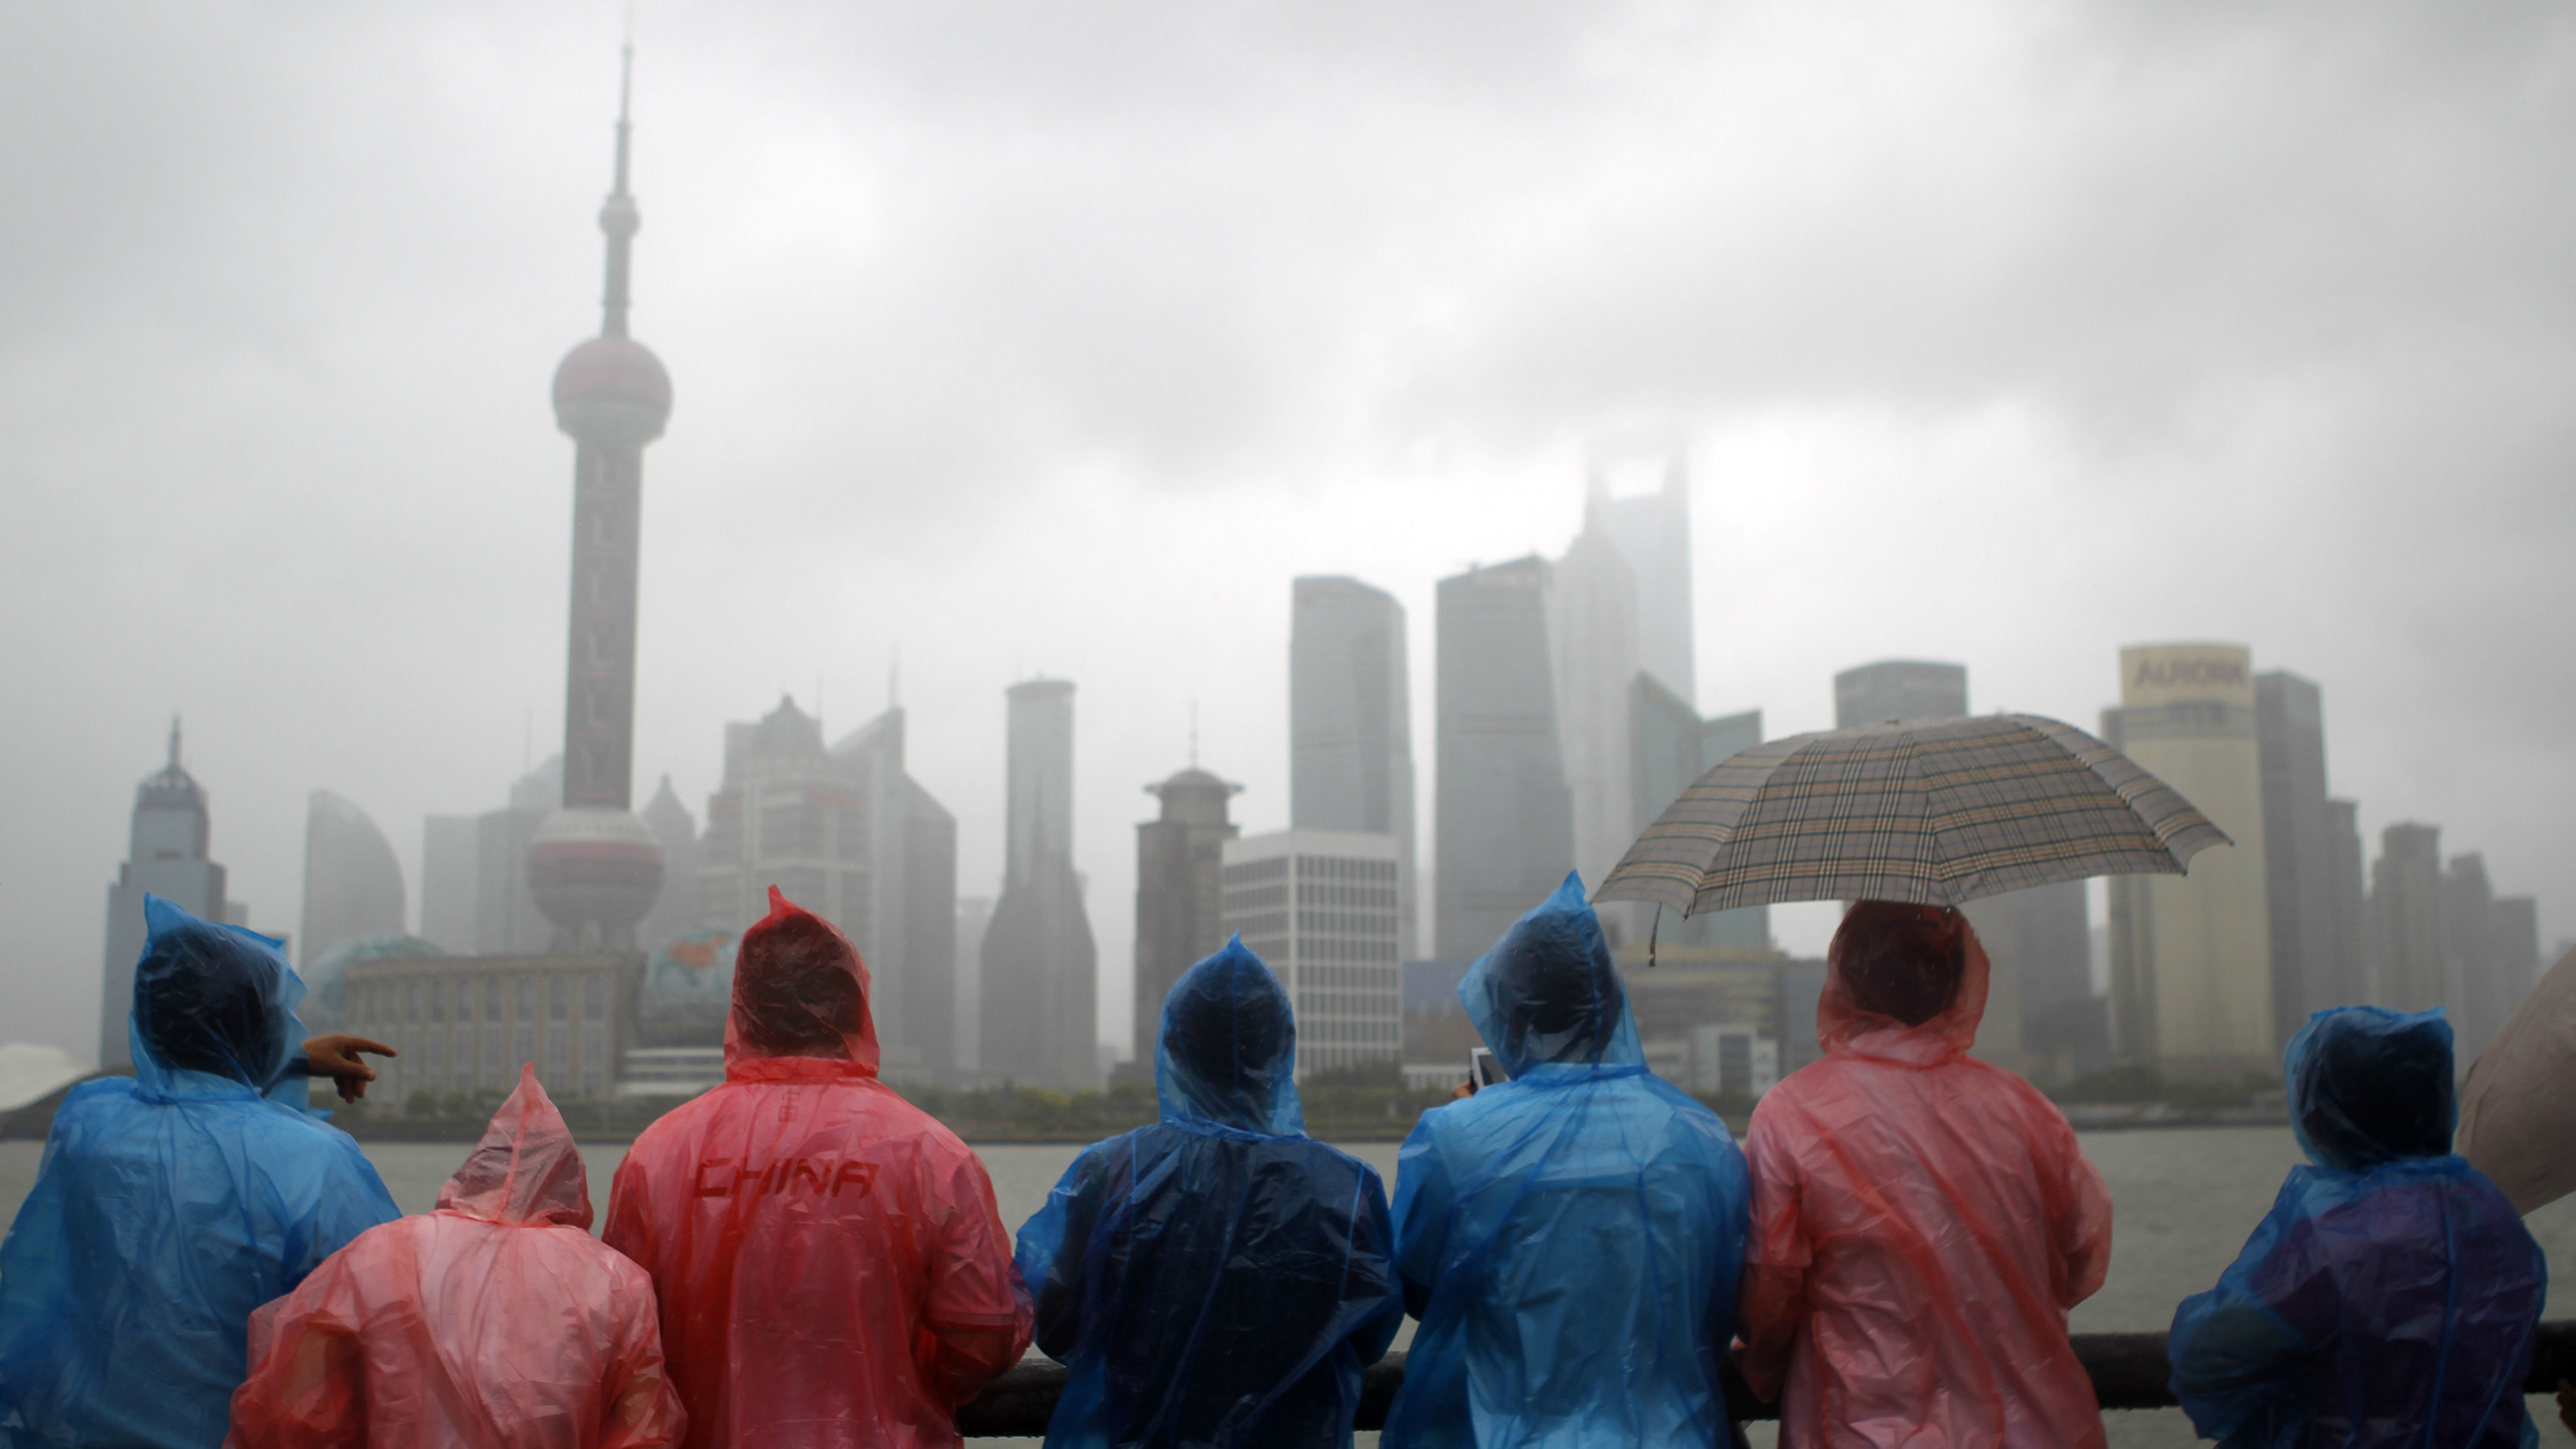 People looking at the Shanghai skyline during a rainstorm.